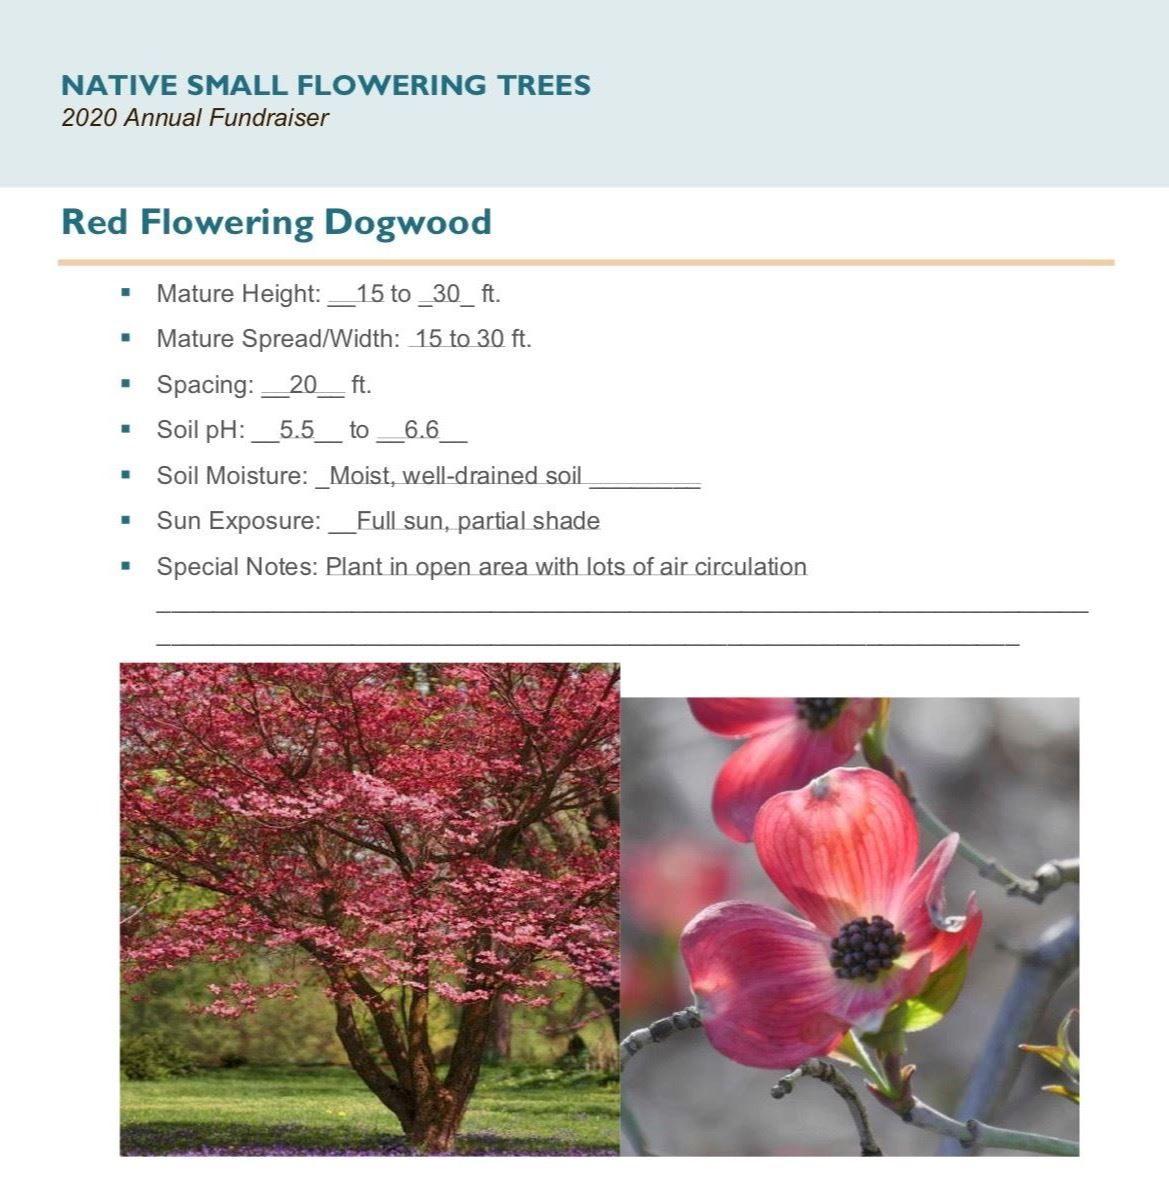 Brochure_Native_Small_Flowering_Treespg 2